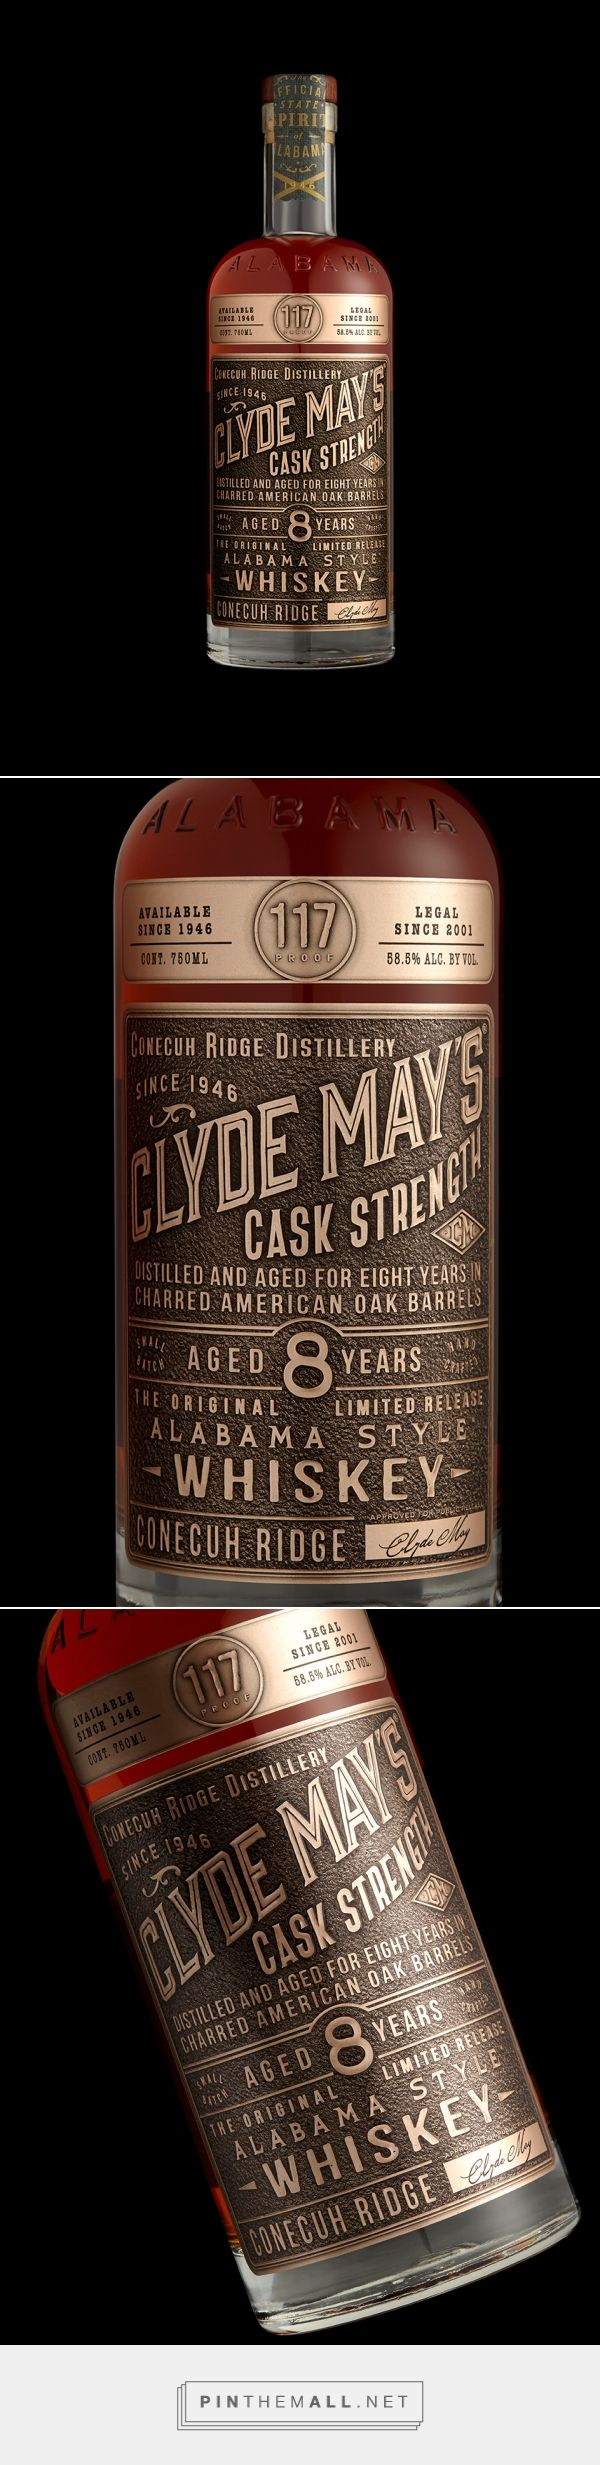 Clyde May's Cask Strength whiskey packaging design by Stranger & Stranger - http://www.packagingoftheworld.com/2017/10/clyde-mays-cask-strength.html